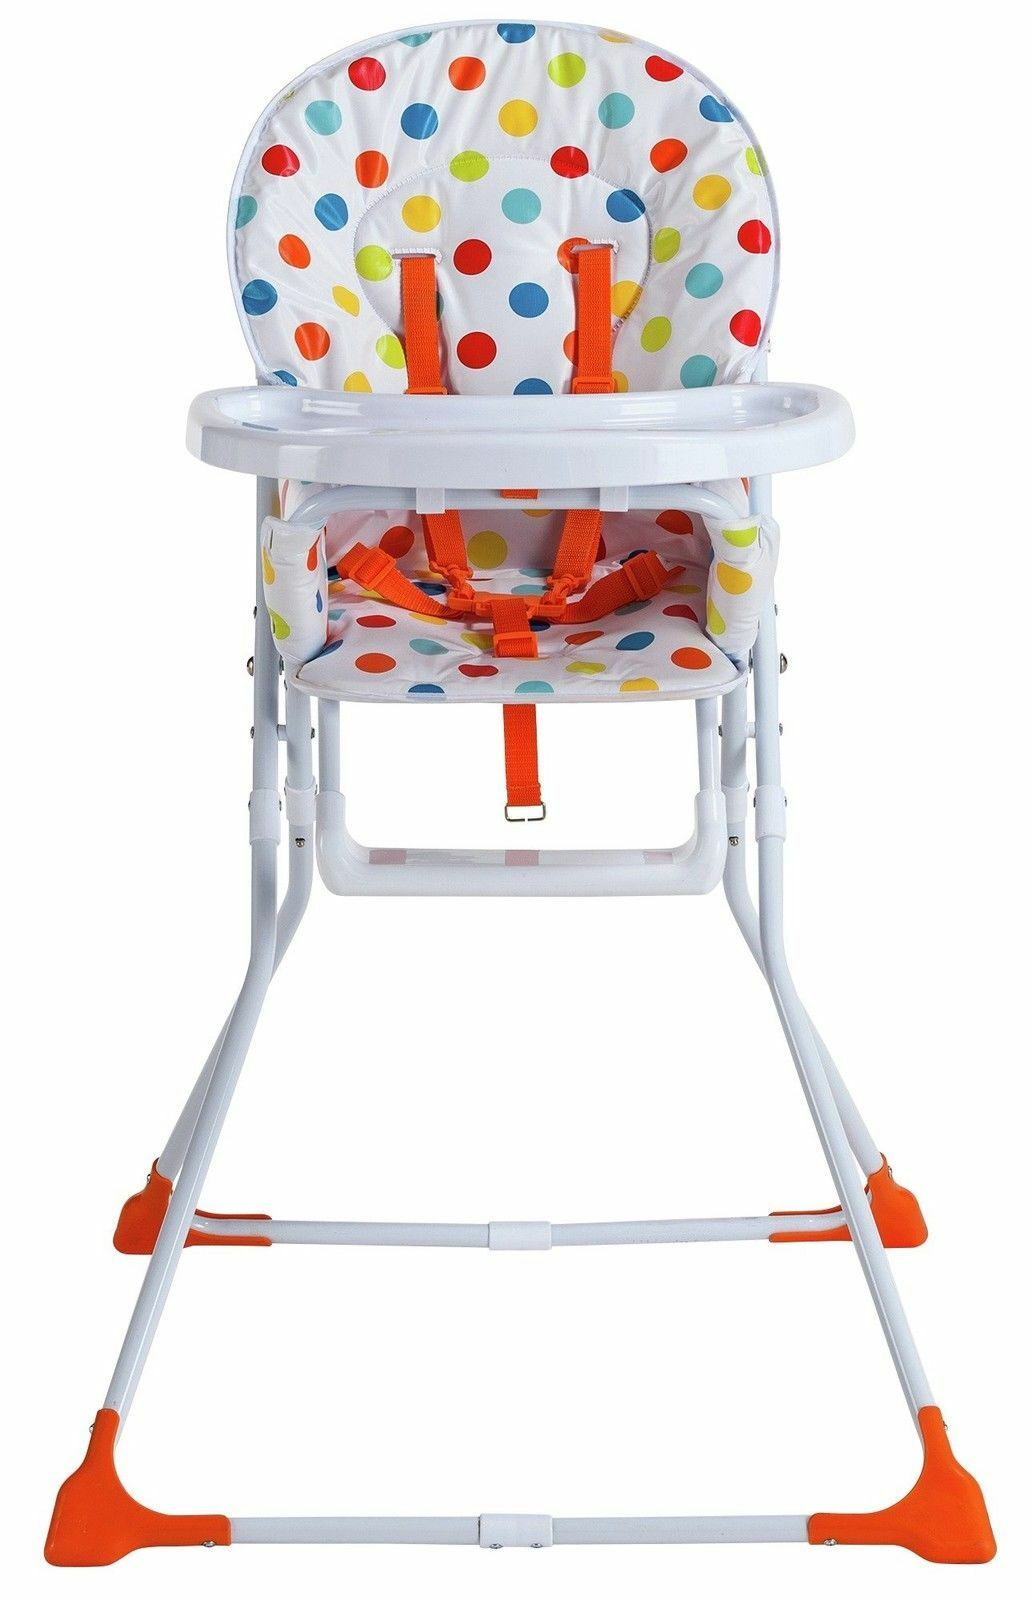 Baby Chairs Argos Argos Recalls Cuggl High Chair Over Fears It Could Fall Over